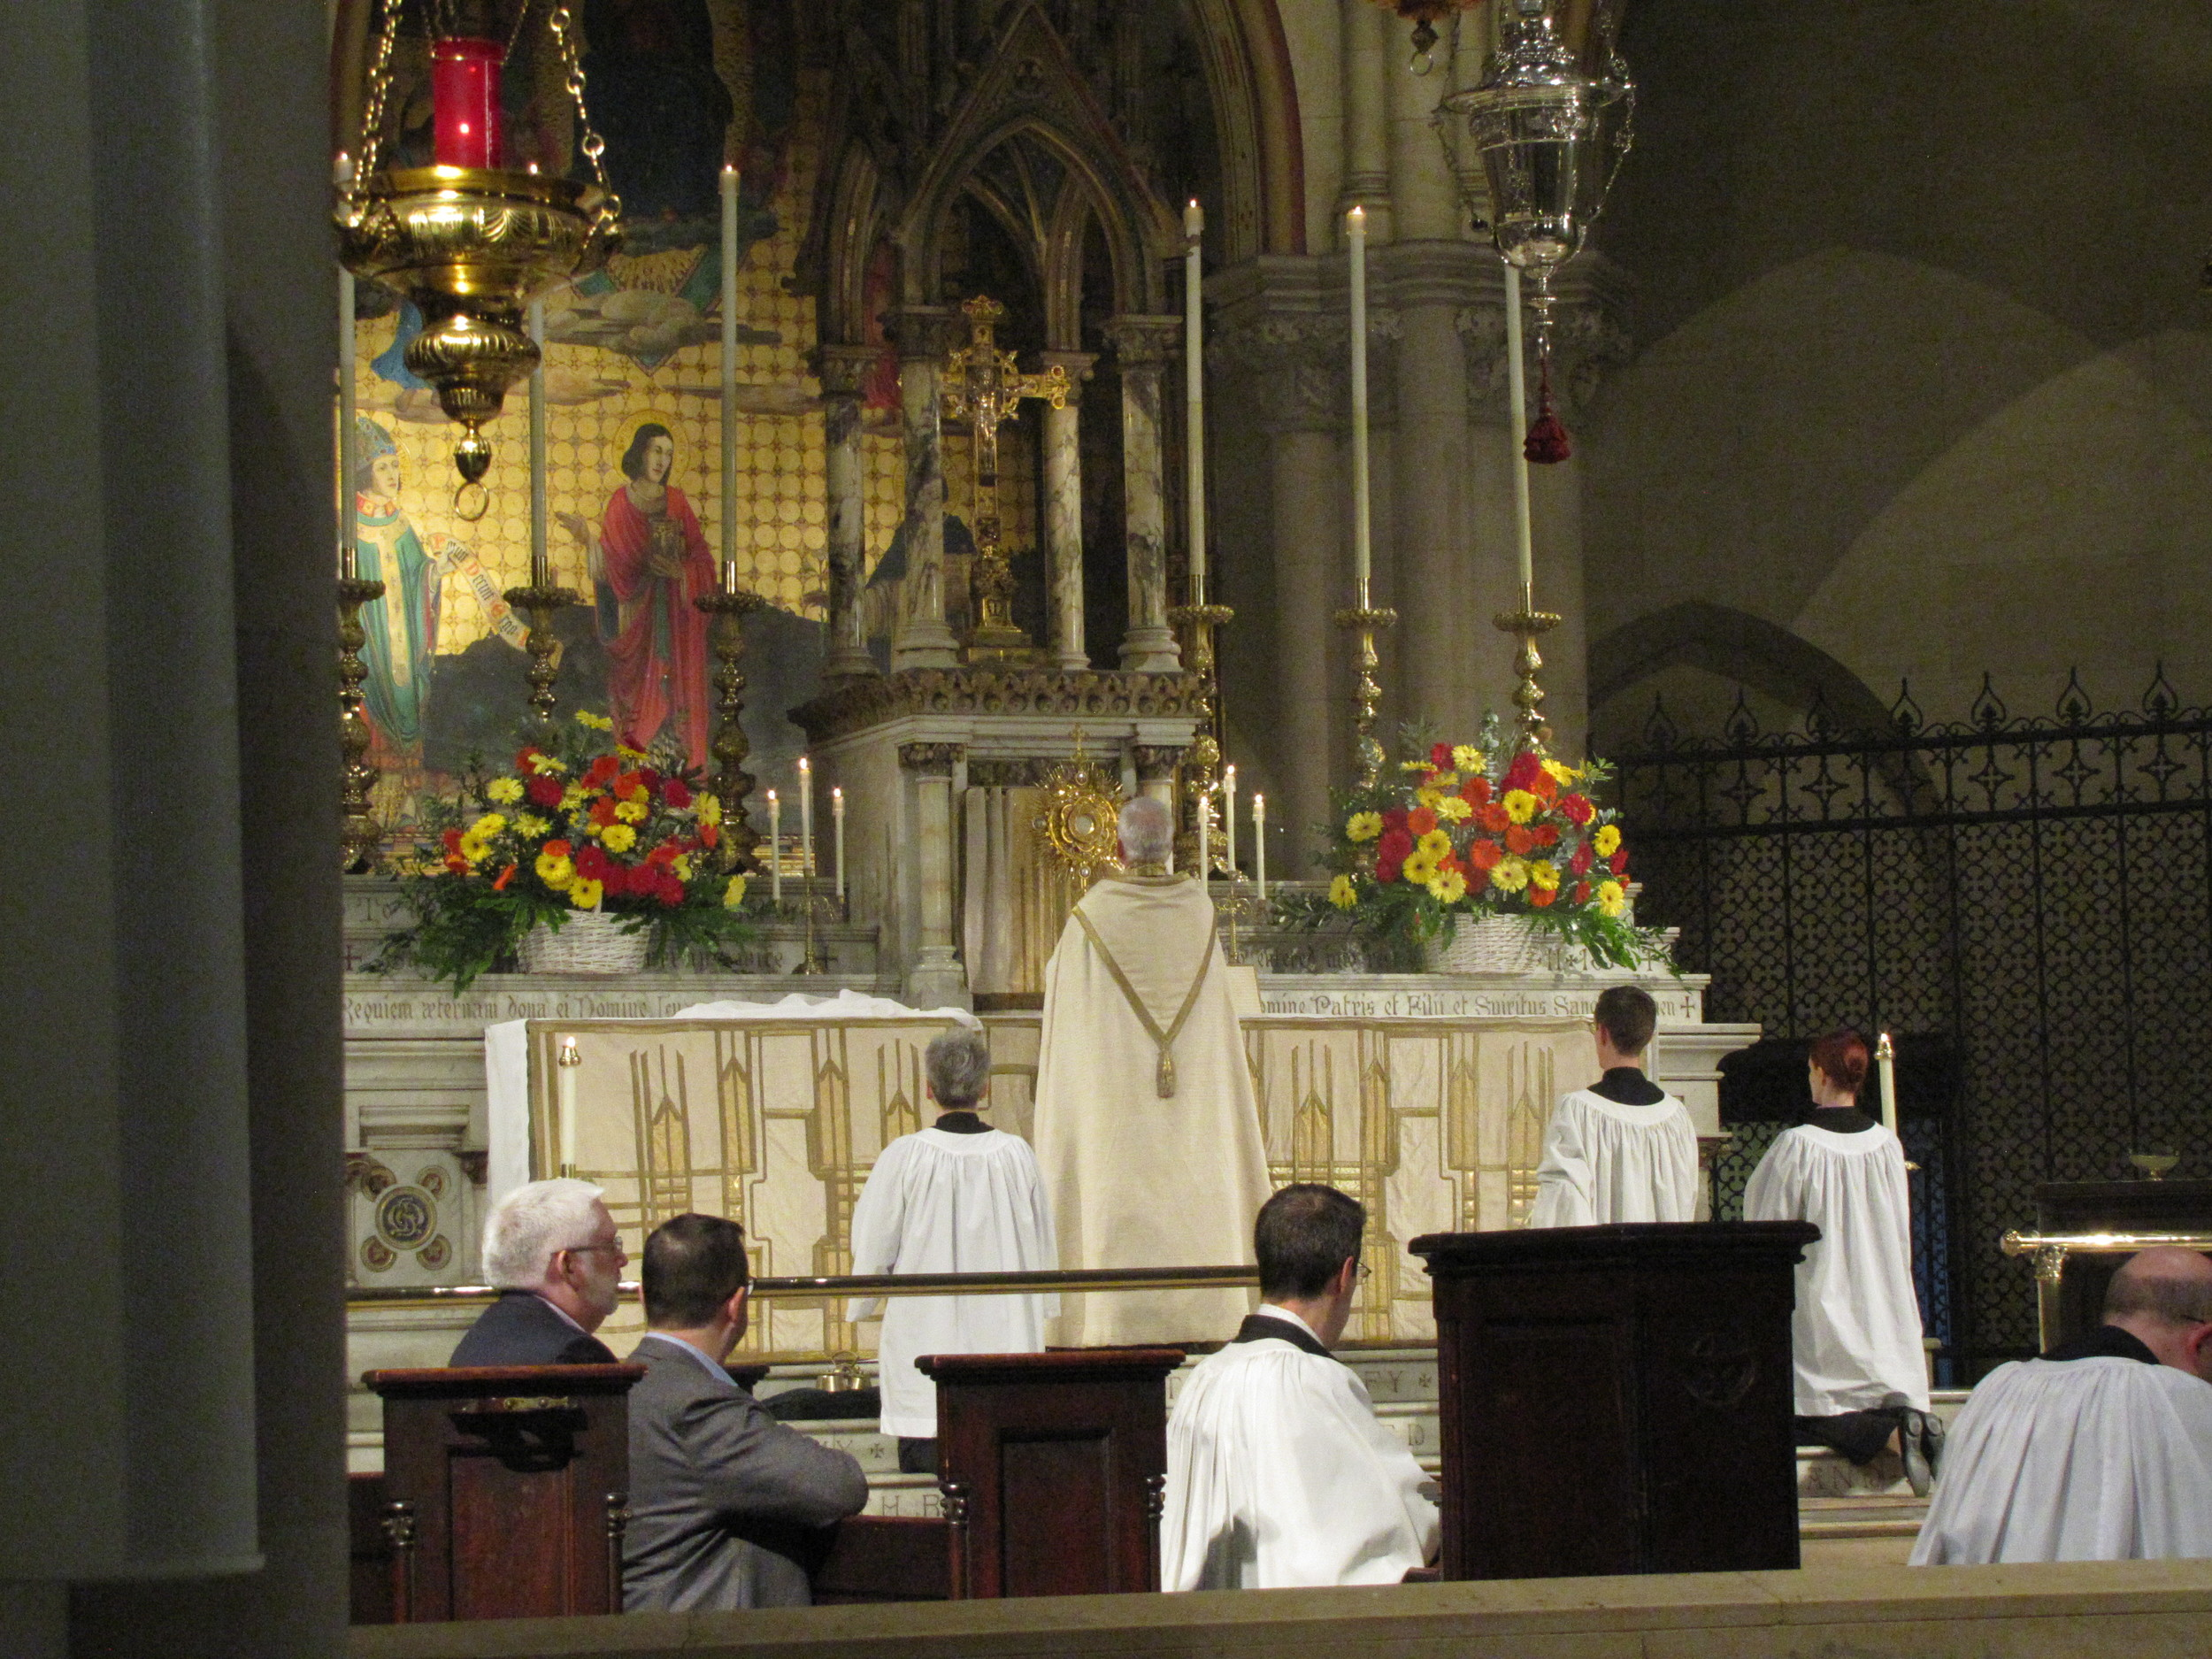 Sunday Evensong and Benediction